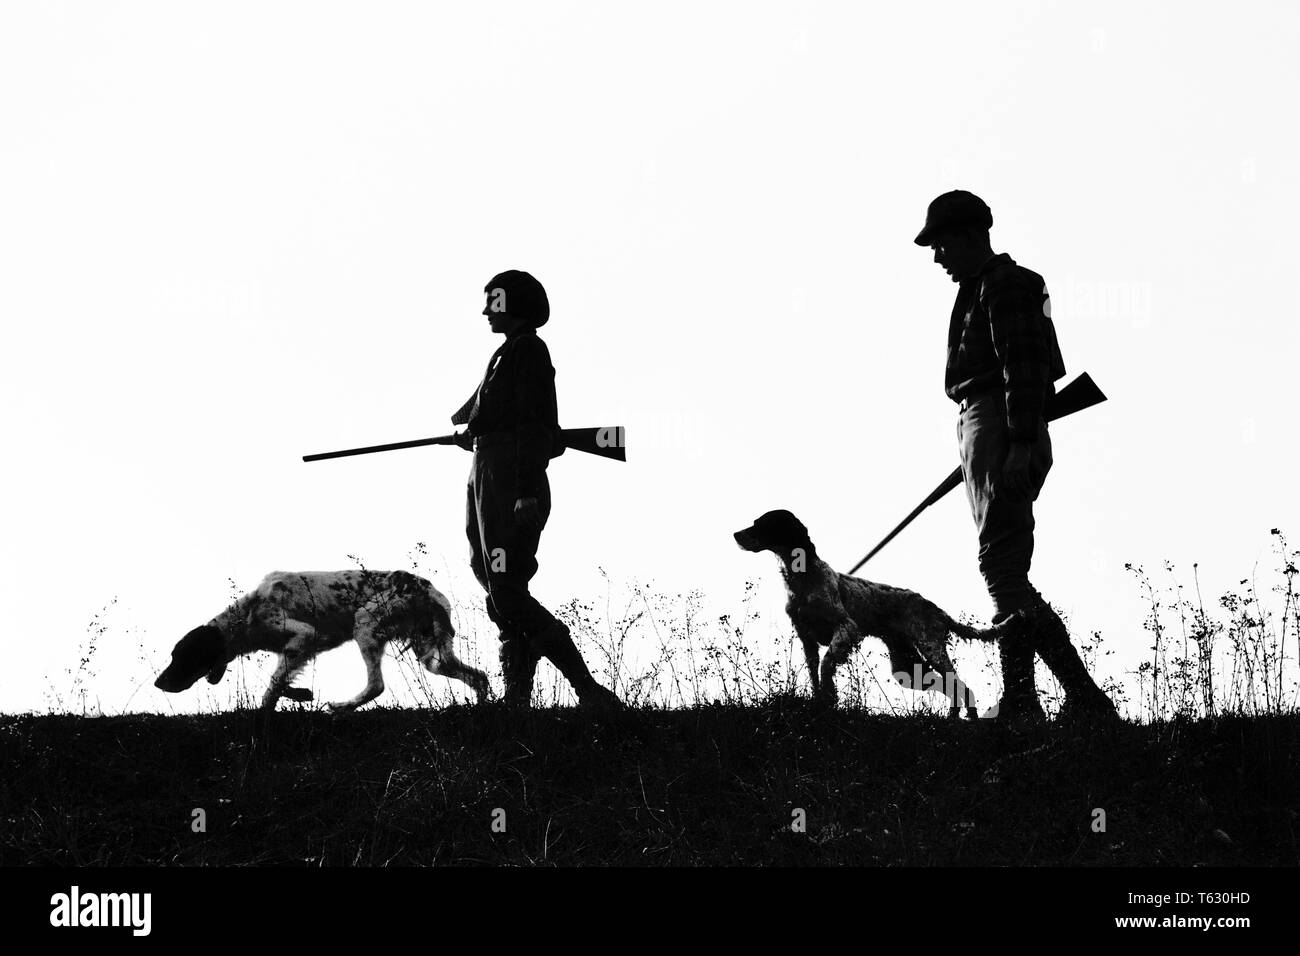 1920s 1930s ANONYMOUS SILHOUETTE MAN AND WOMAN HUNTERS CARRYING GUNS EACH WITH A HUNTING DOG  - s2541 HAR001 HARS LEISURE SILHOUETTED AND CANINES RECREATION POOCH CONNECTION ANONYMOUS CANINE COOPERATION FIREARM FIREARMS HUNTERS MAMMAL MID-ADULT MID-ADULT MAN MID-ADULT WOMAN TOGETHERNESS BLACK AND WHITE HAR001 OLD FASHIONED - Stock Image